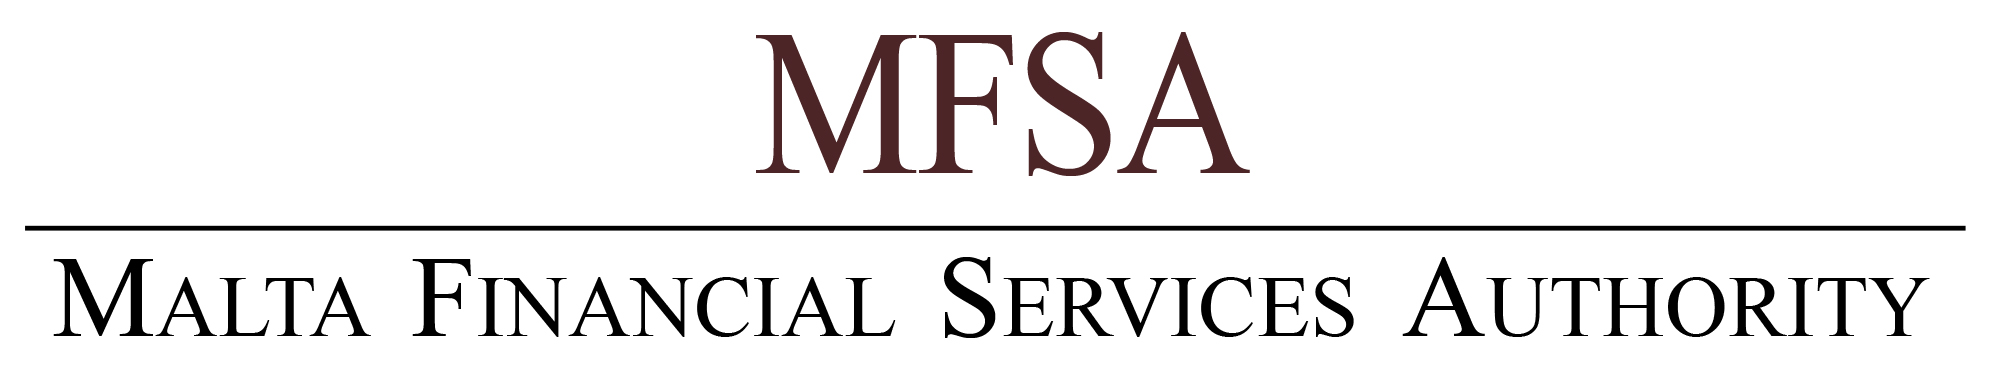 mfsa-malta-financial-services-authority-logo-copy